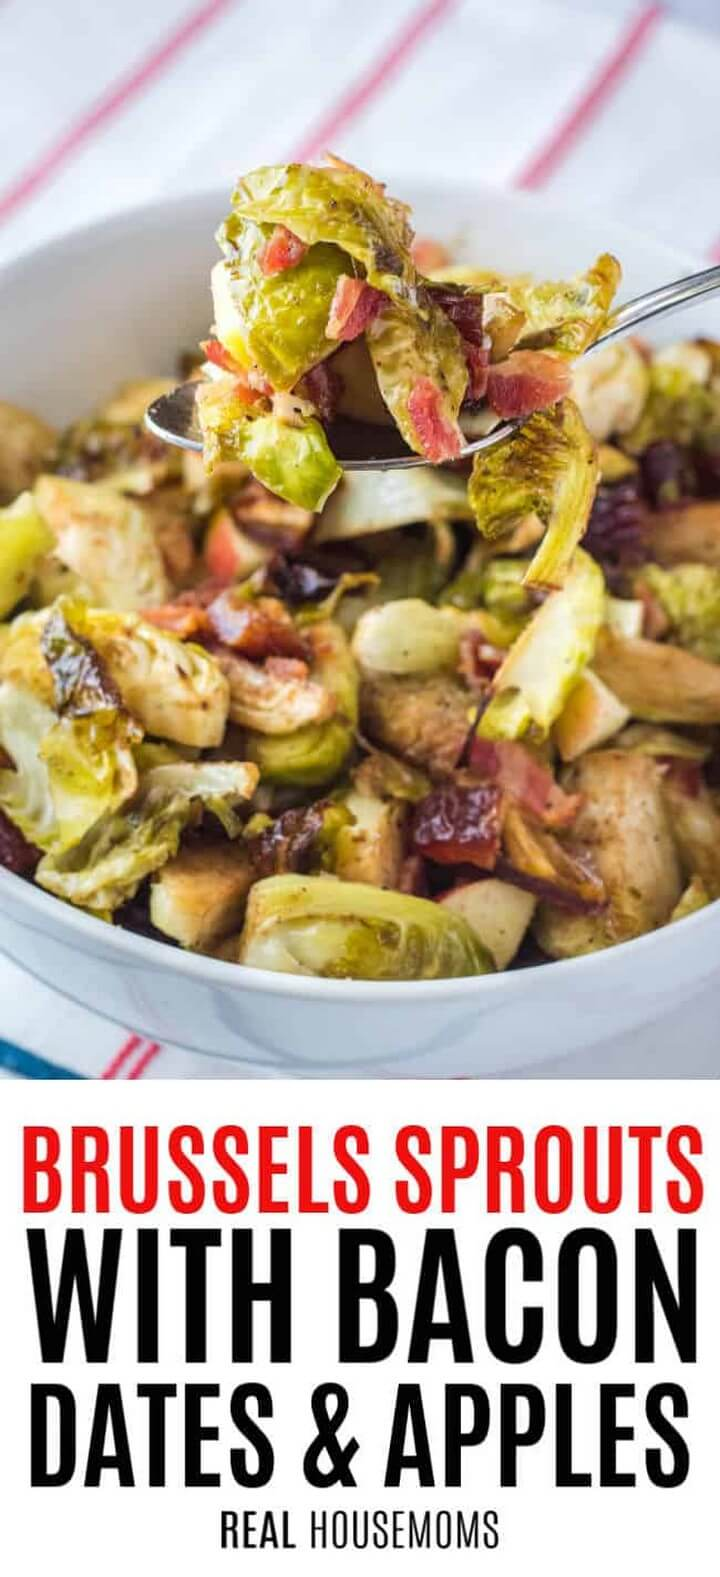 Brussel Sprouts with Bacon Dates and Apples 2